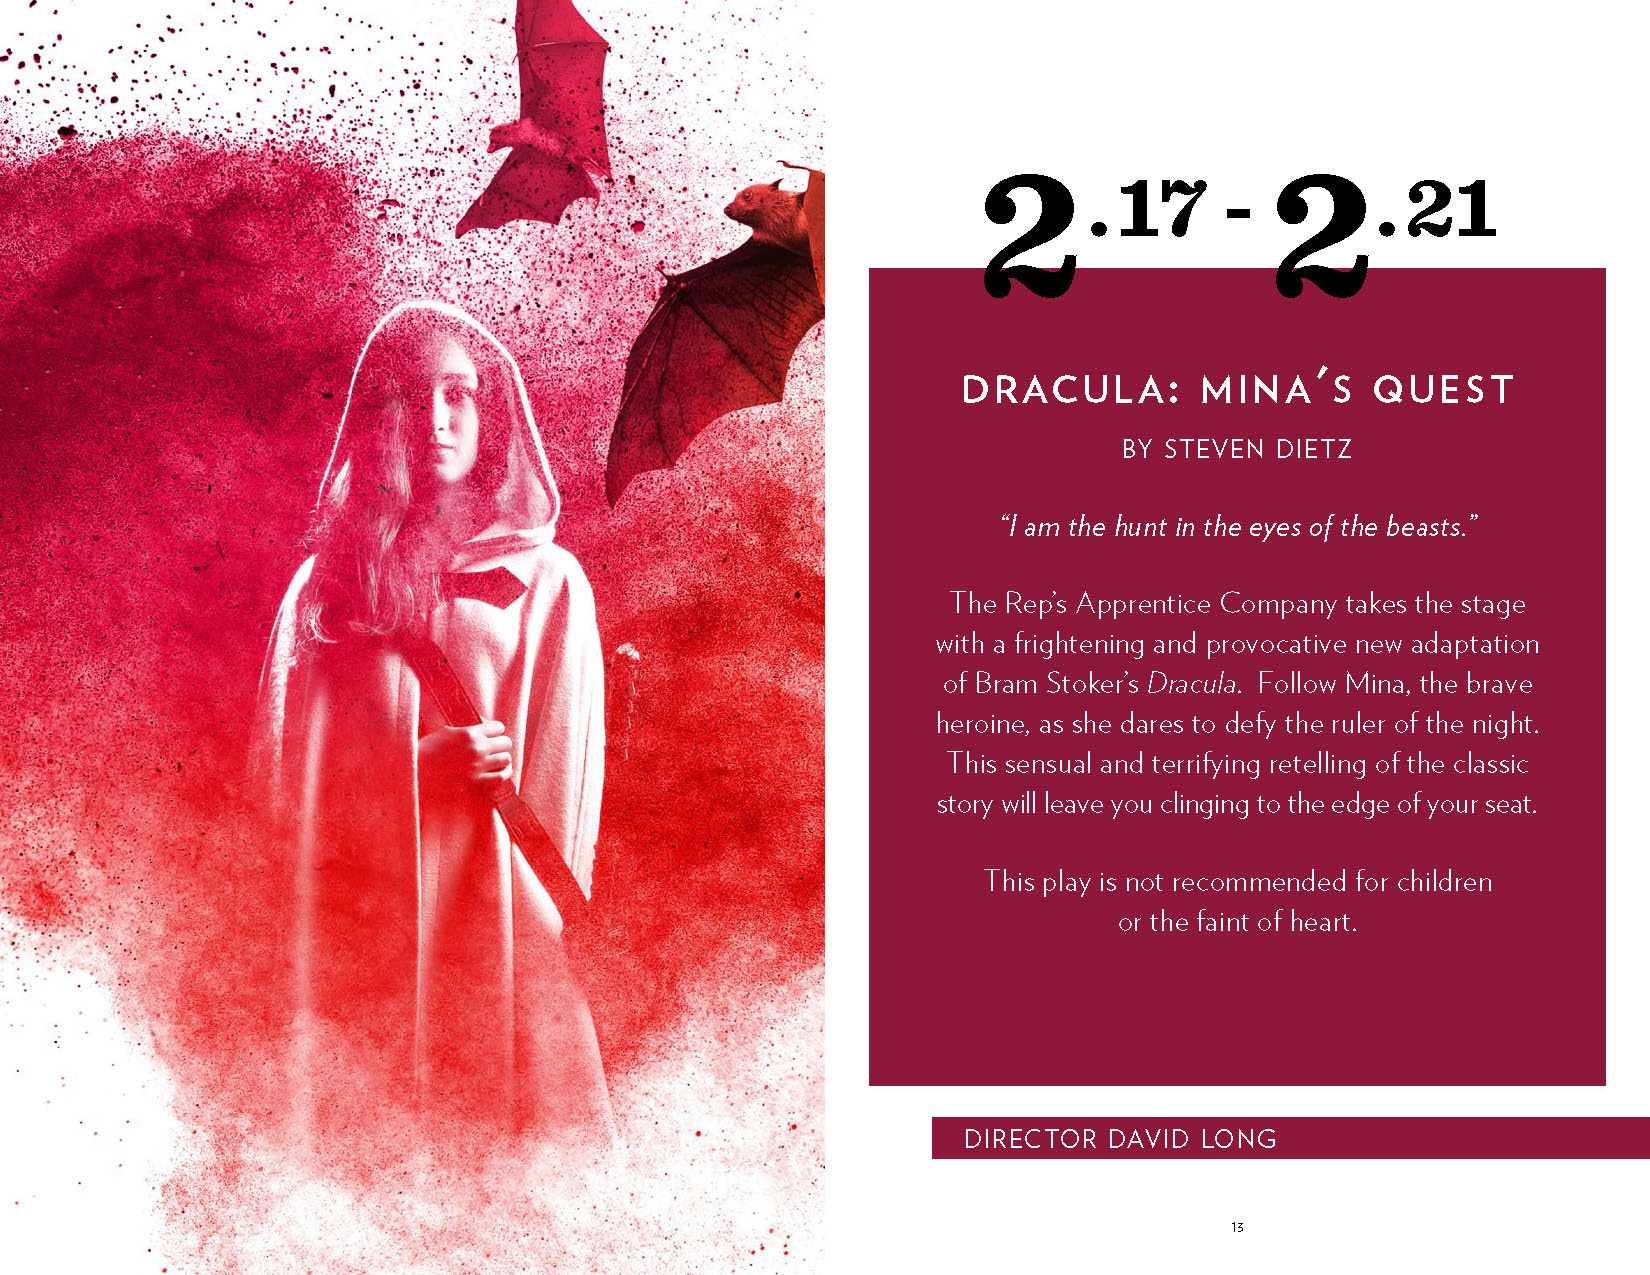 A program spread. On the left side is show art featuring a girl in a hood overlaid onto a dramatic red explosion of powder, with bats flying overhead. On the right are the dates, '2/17–2/21' and the title of the play, 'Dracula: Mina's Quest'.